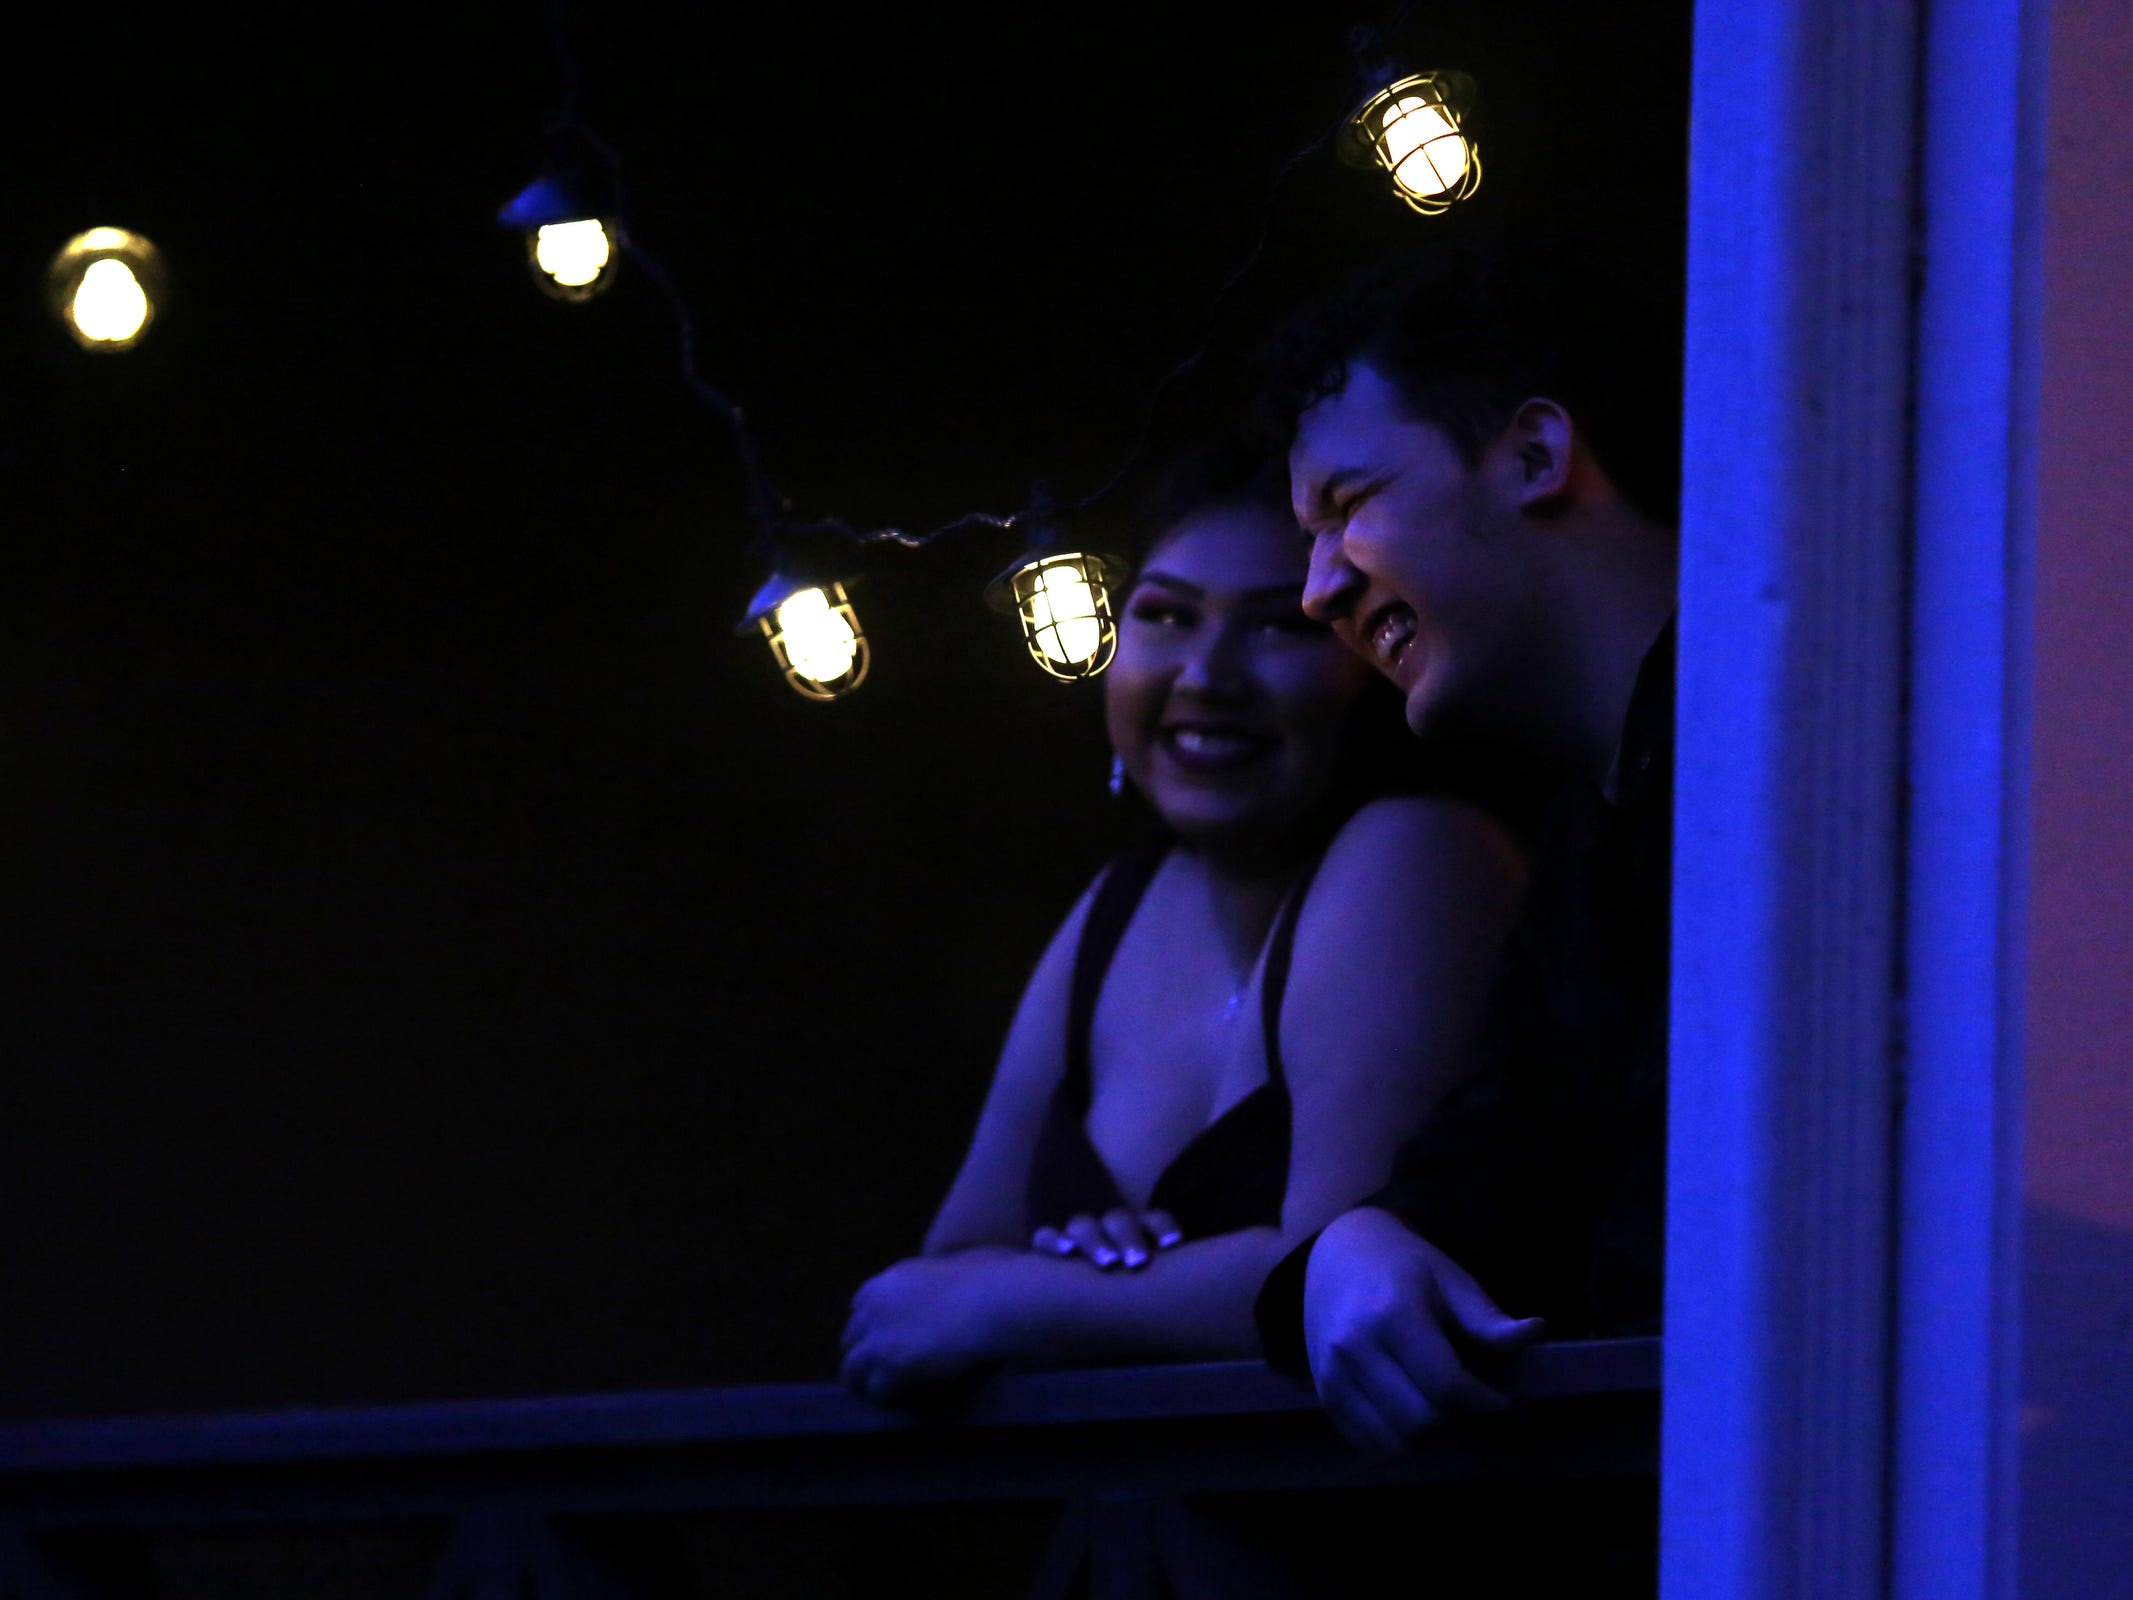 Cinnamon Lopez and Orion Gomez, both juniors, talk outside during the South Salem High School prom at Zenith Vineyard in West Salem on April 13, 2019.